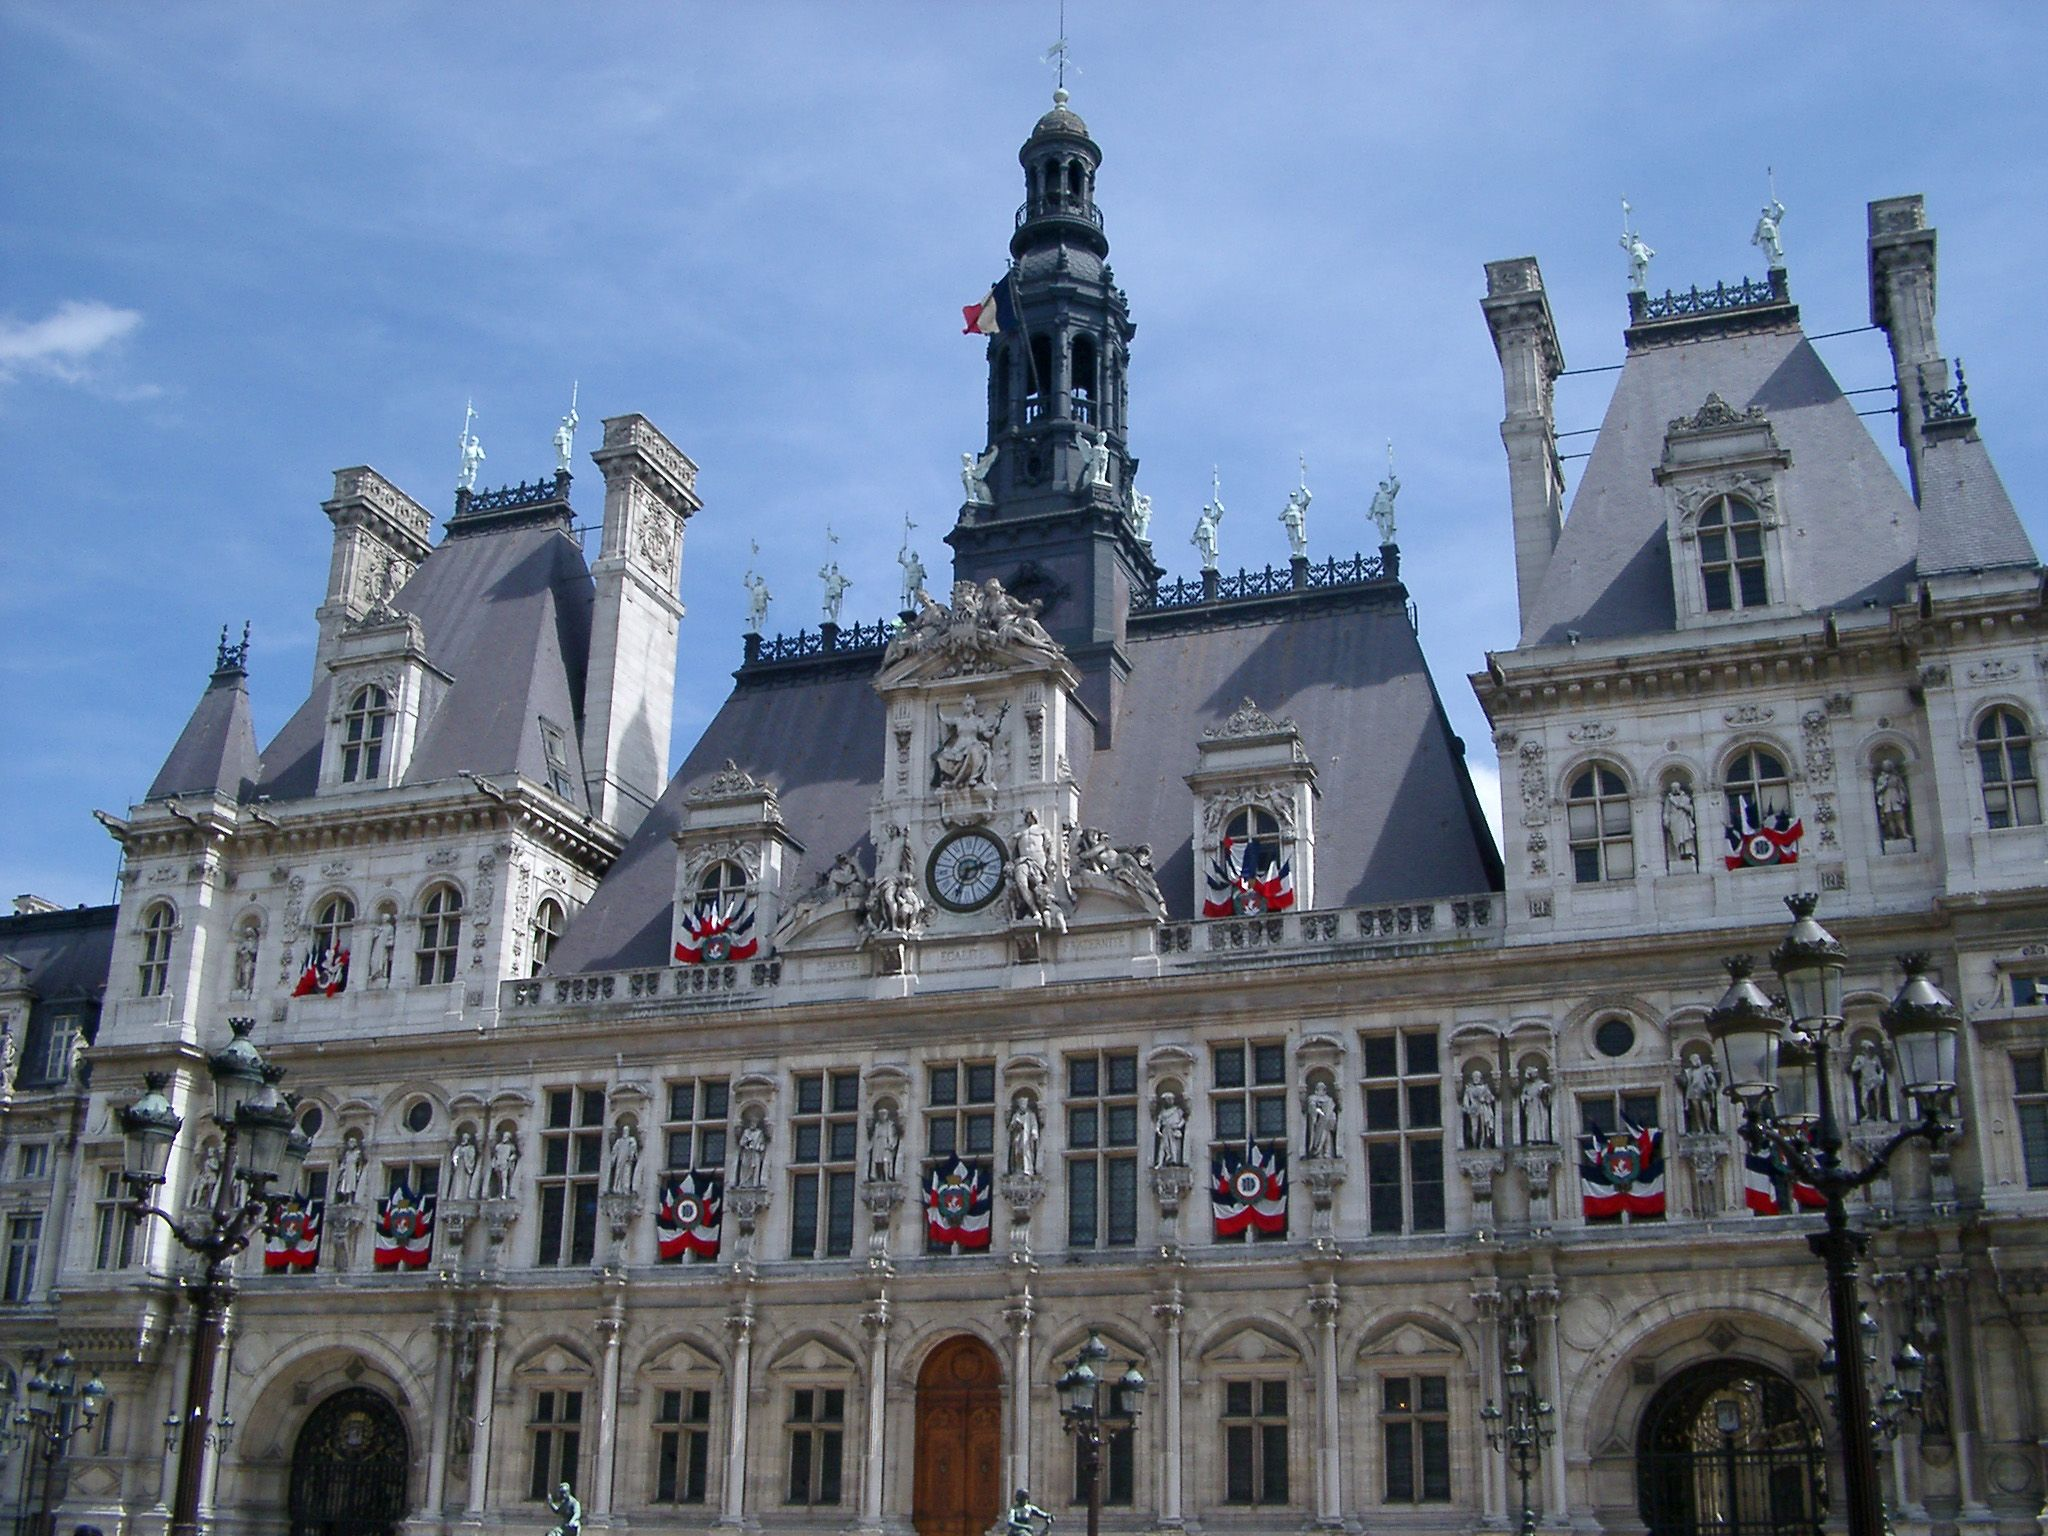 Exterior Of Hotel De Ville Administrative Building In Paris